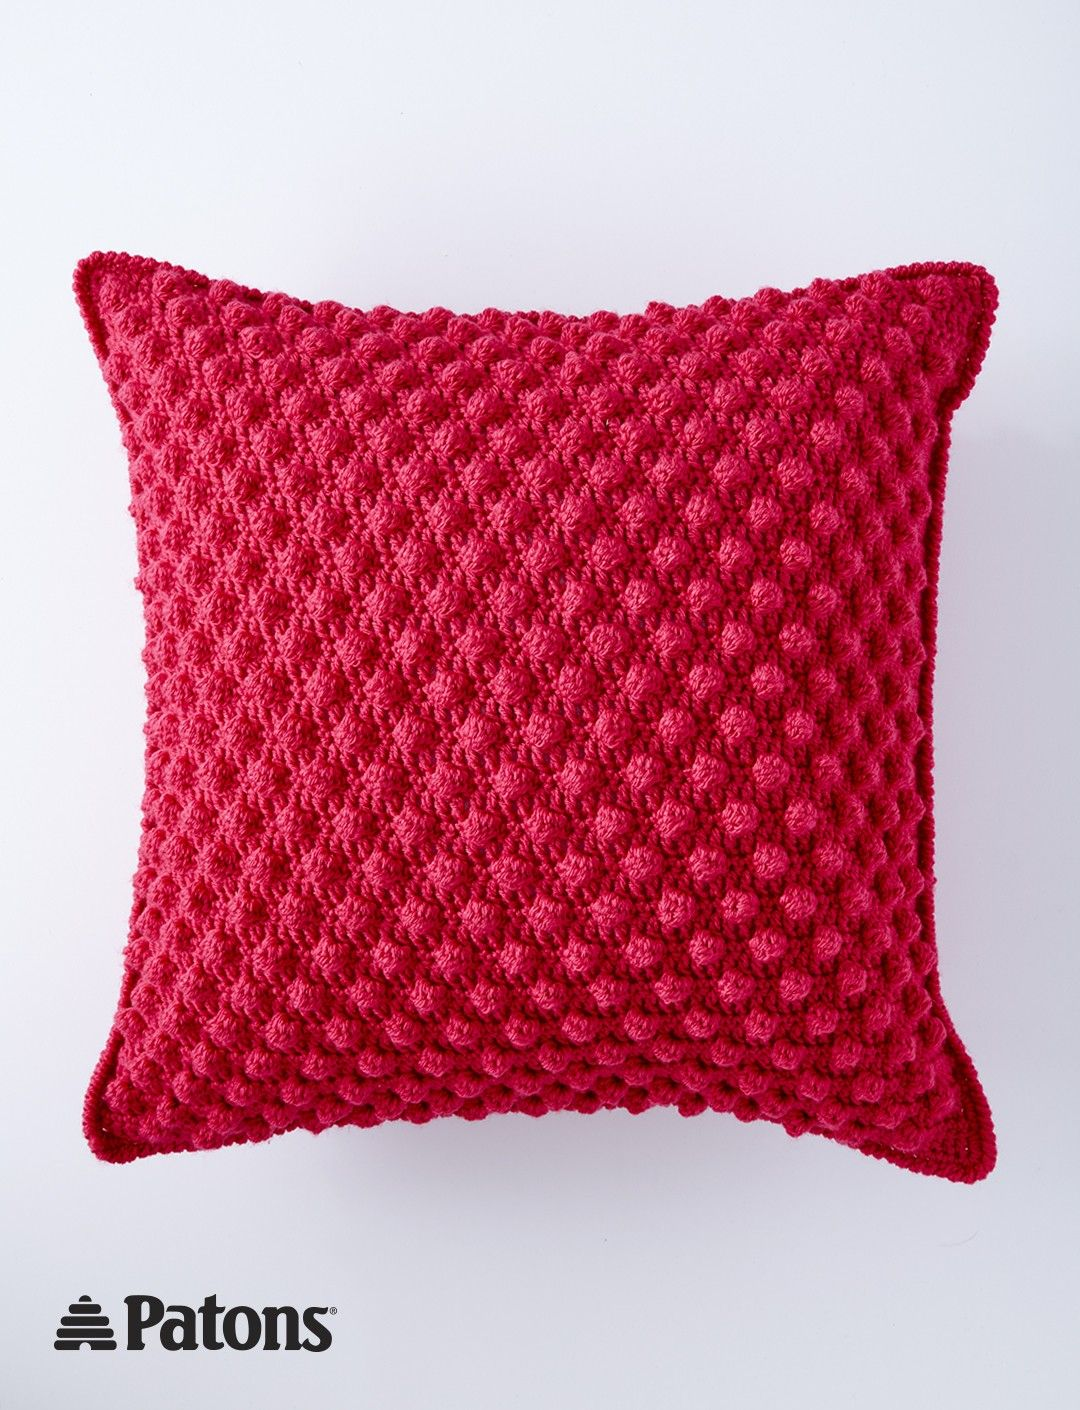 bobbled pillow easily crocheted in Patons Canadiana yarn. | Bobble ...